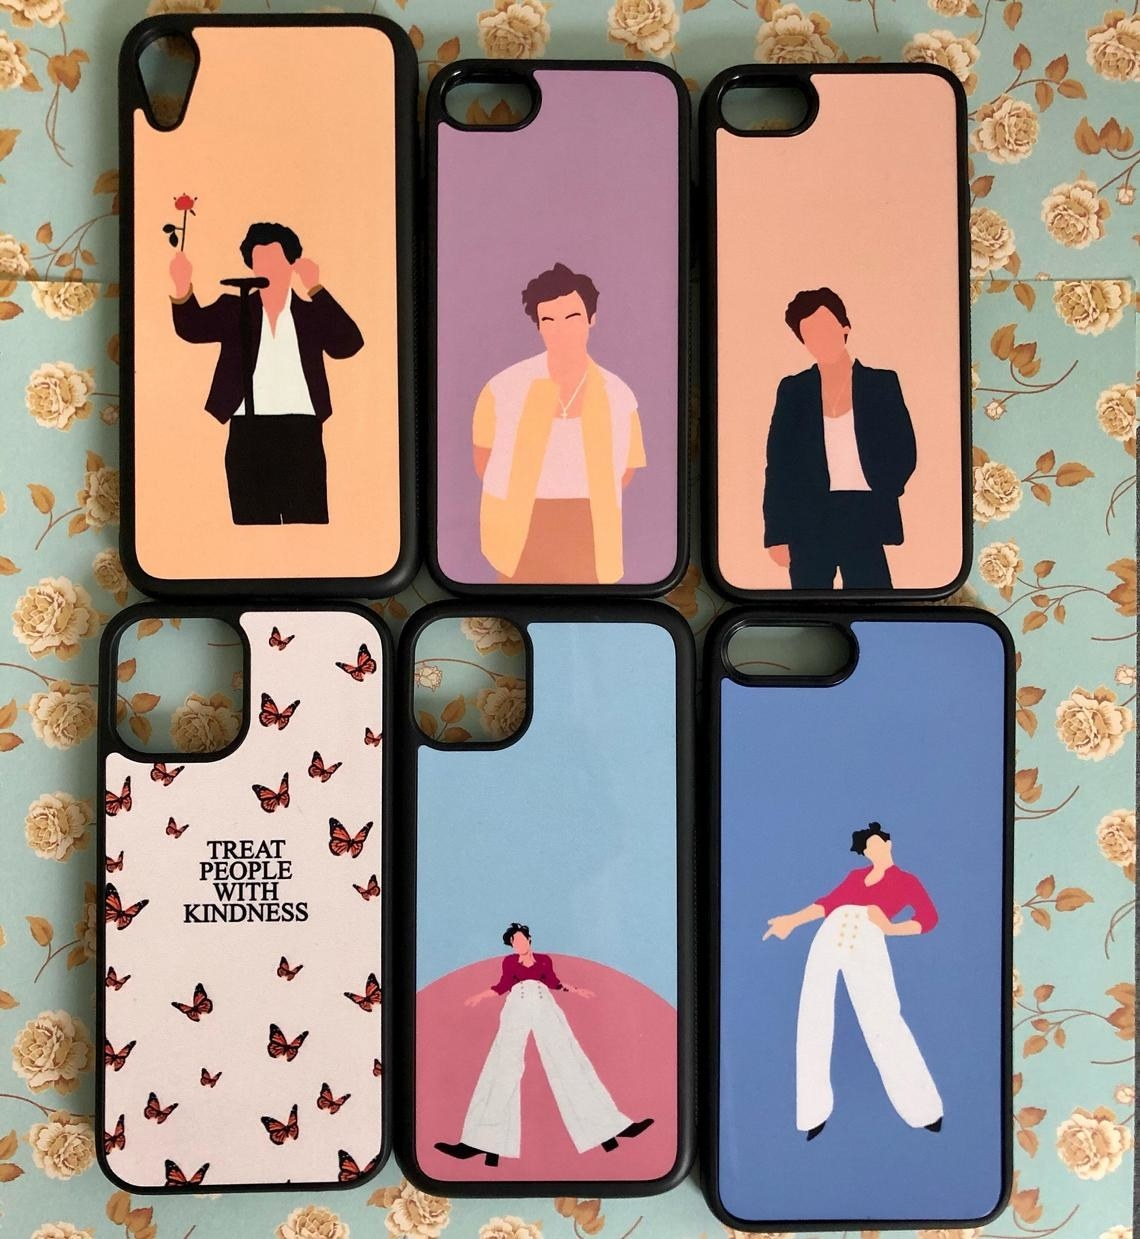 Six cases with Harry Styles designs